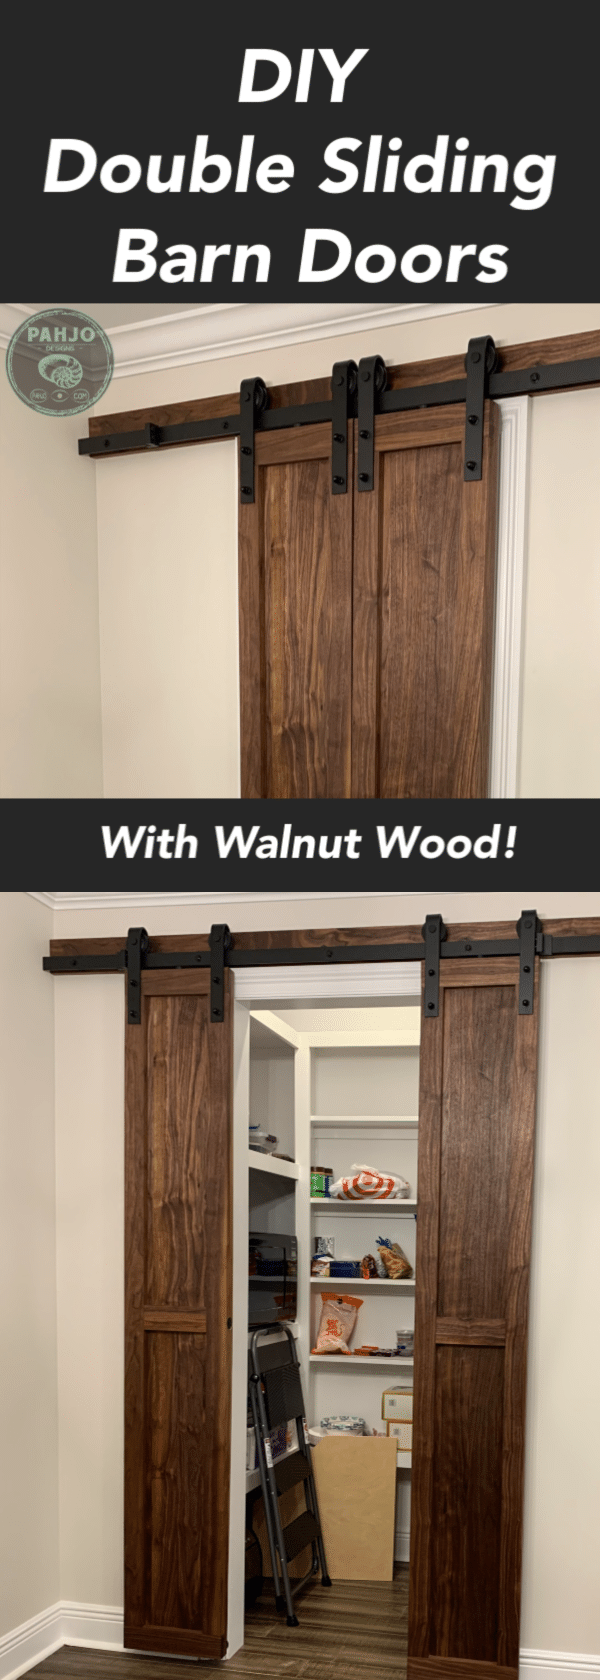 In this tutorial, I show you how to build DIY double sliding barn doors for a pantry.  These rustic barn doors are made with walnut wood and have a matching walnut dining table.